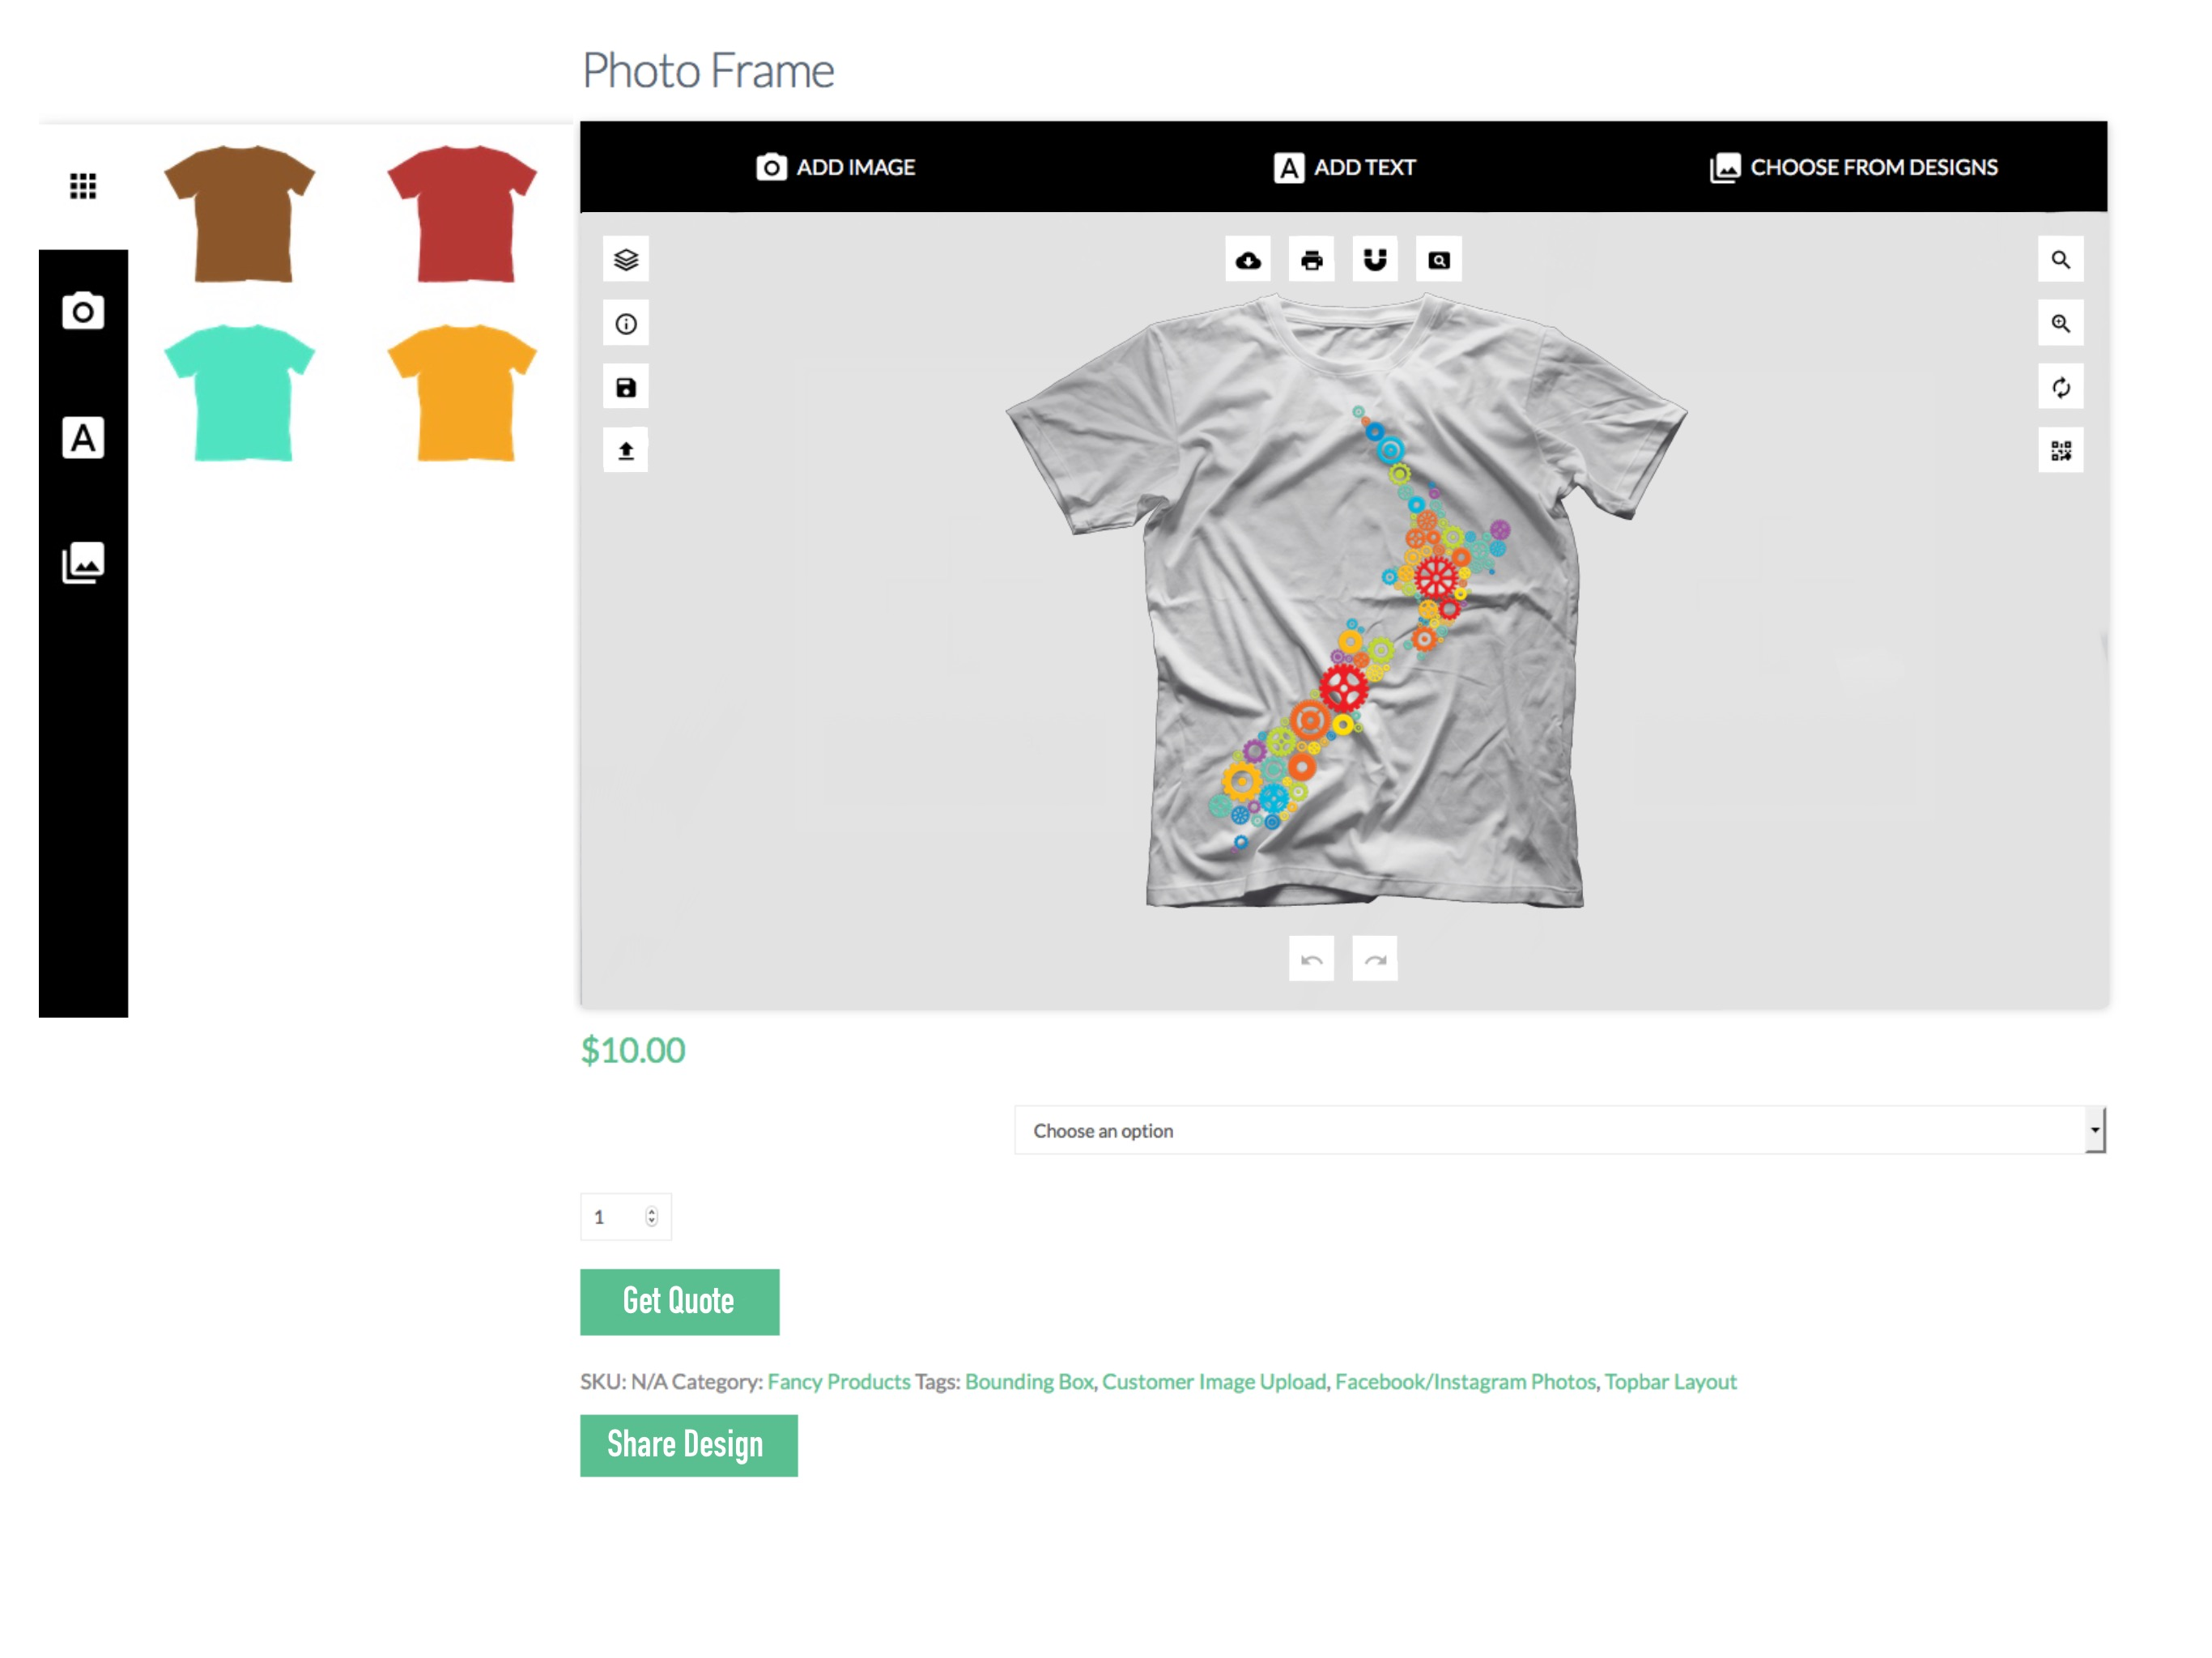 Design your t shirt nz - Our New Online Designer Which Will Be Available Very Soon Will Allow You To Design Your Own T Shirts And Clothing Easily